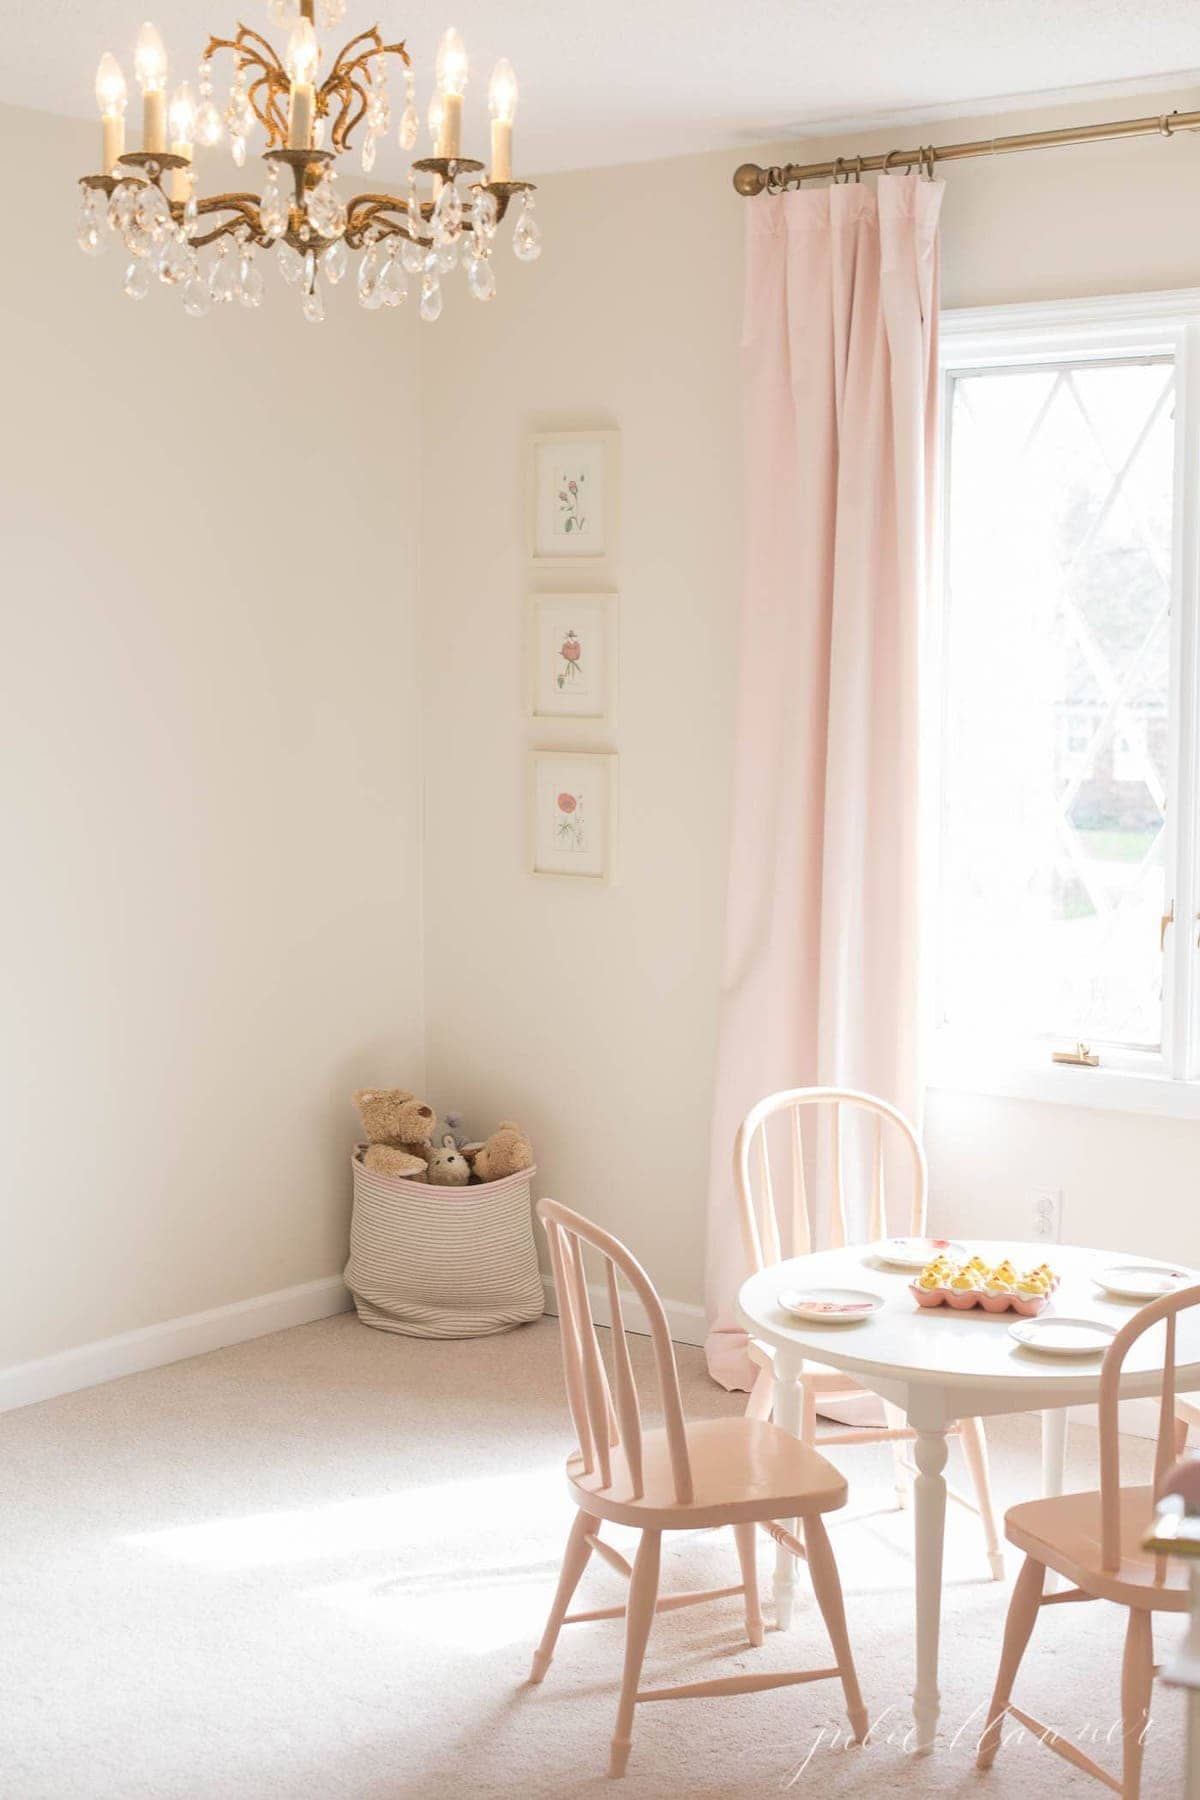 A little girl's room in a cozy home, featuring velvet drapes and a vintage chandelier.